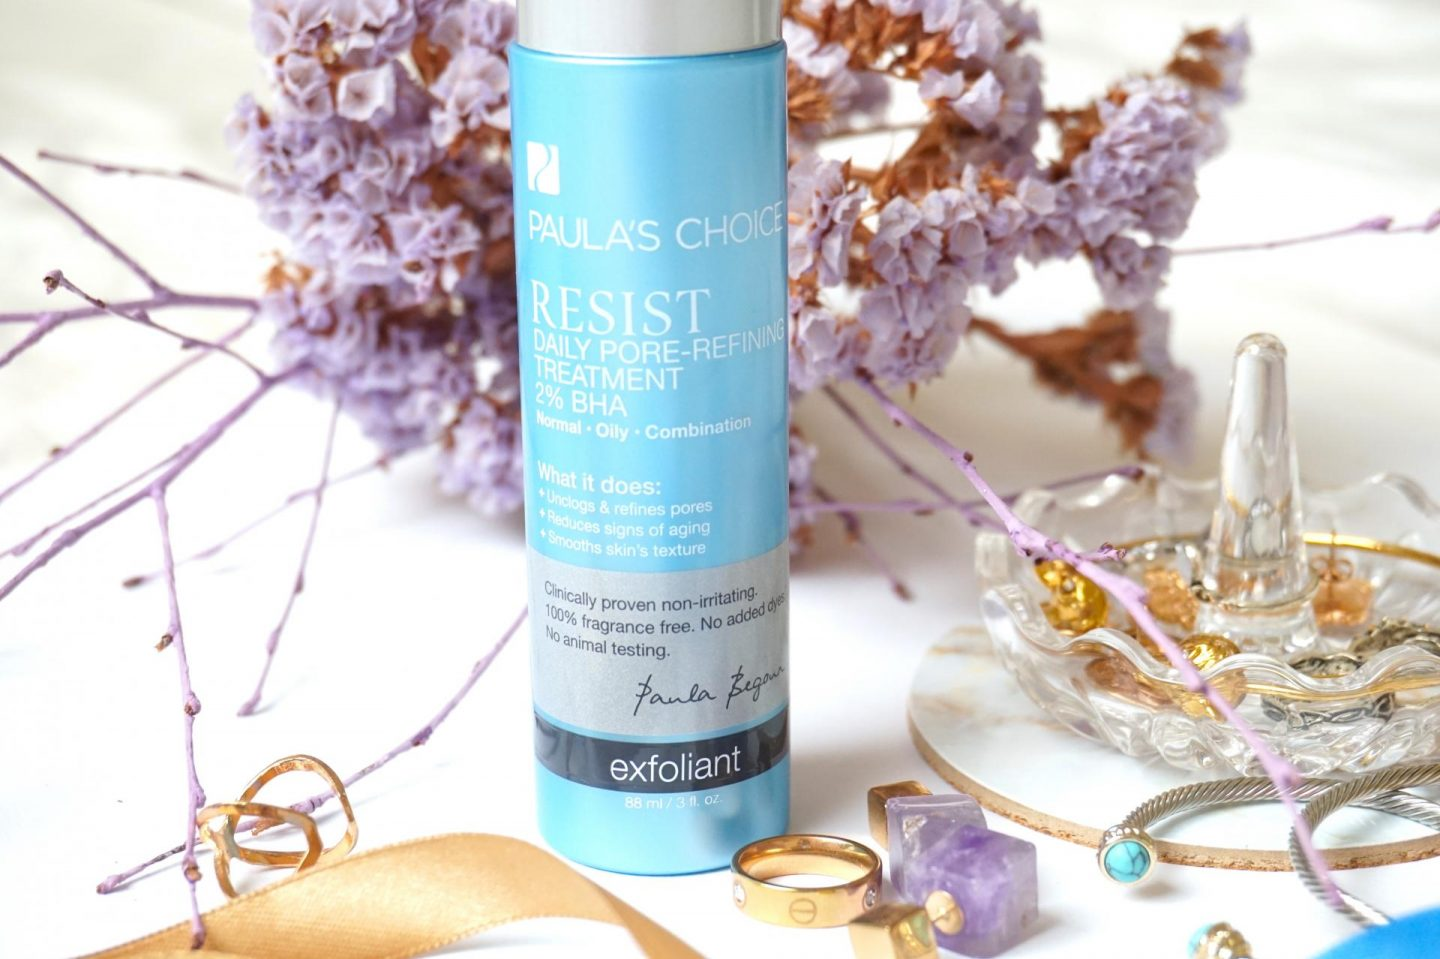 Paula's Choice, Resist Daily Pore-Refining Treatment 2% BHA